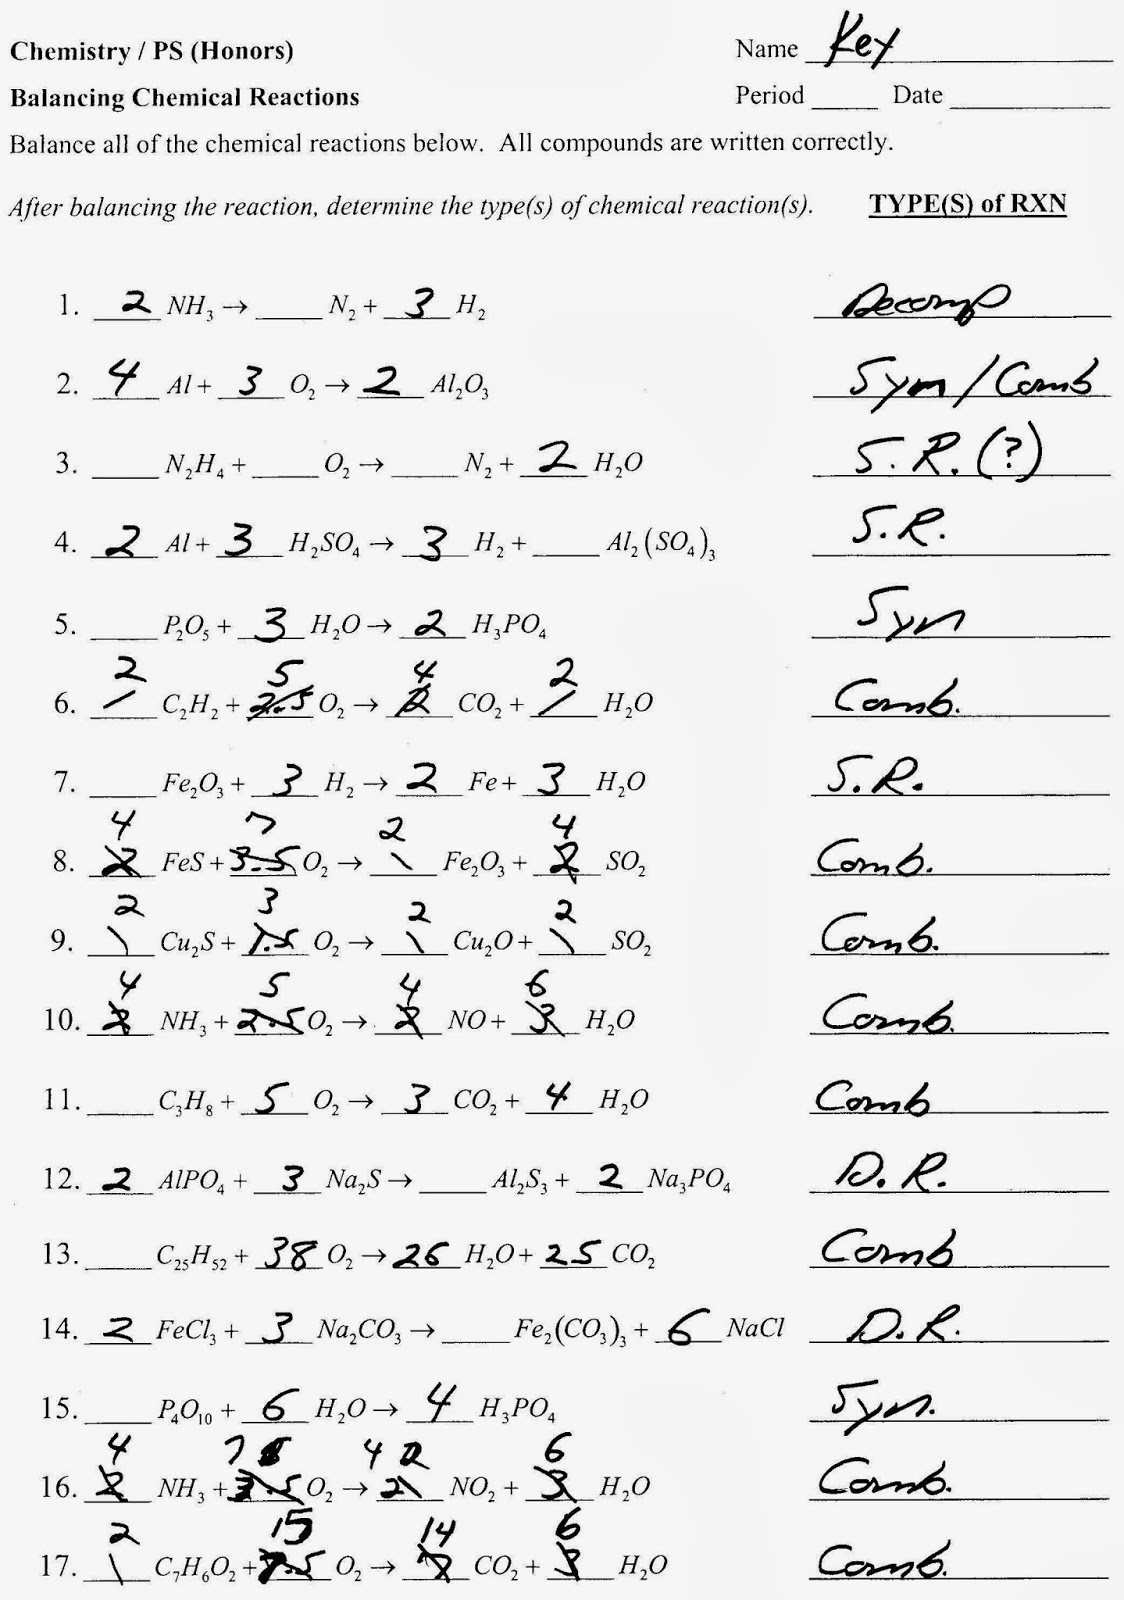 Aldiablosus  Sweet Balancing Chemical Equations Worksheets Balancing Chemical  With Interesting Balancing Chemical Equations Worksheet Answer Key On Chemistry Double With Endearing Covalent Naming Worksheet Also Of Mice And Men Worksheets In Addition First Grade Money Worksheets And Proportional Relationships Worksheets As Well As Velocity And Acceleration Calculation Worksheet Answers Additionally Discriminant Worksheet From Letstalkhiphopus With Aldiablosus  Interesting Balancing Chemical Equations Worksheets Balancing Chemical  With Endearing Balancing Chemical Equations Worksheet Answer Key On Chemistry Double And Sweet Covalent Naming Worksheet Also Of Mice And Men Worksheets In Addition First Grade Money Worksheets From Letstalkhiphopus